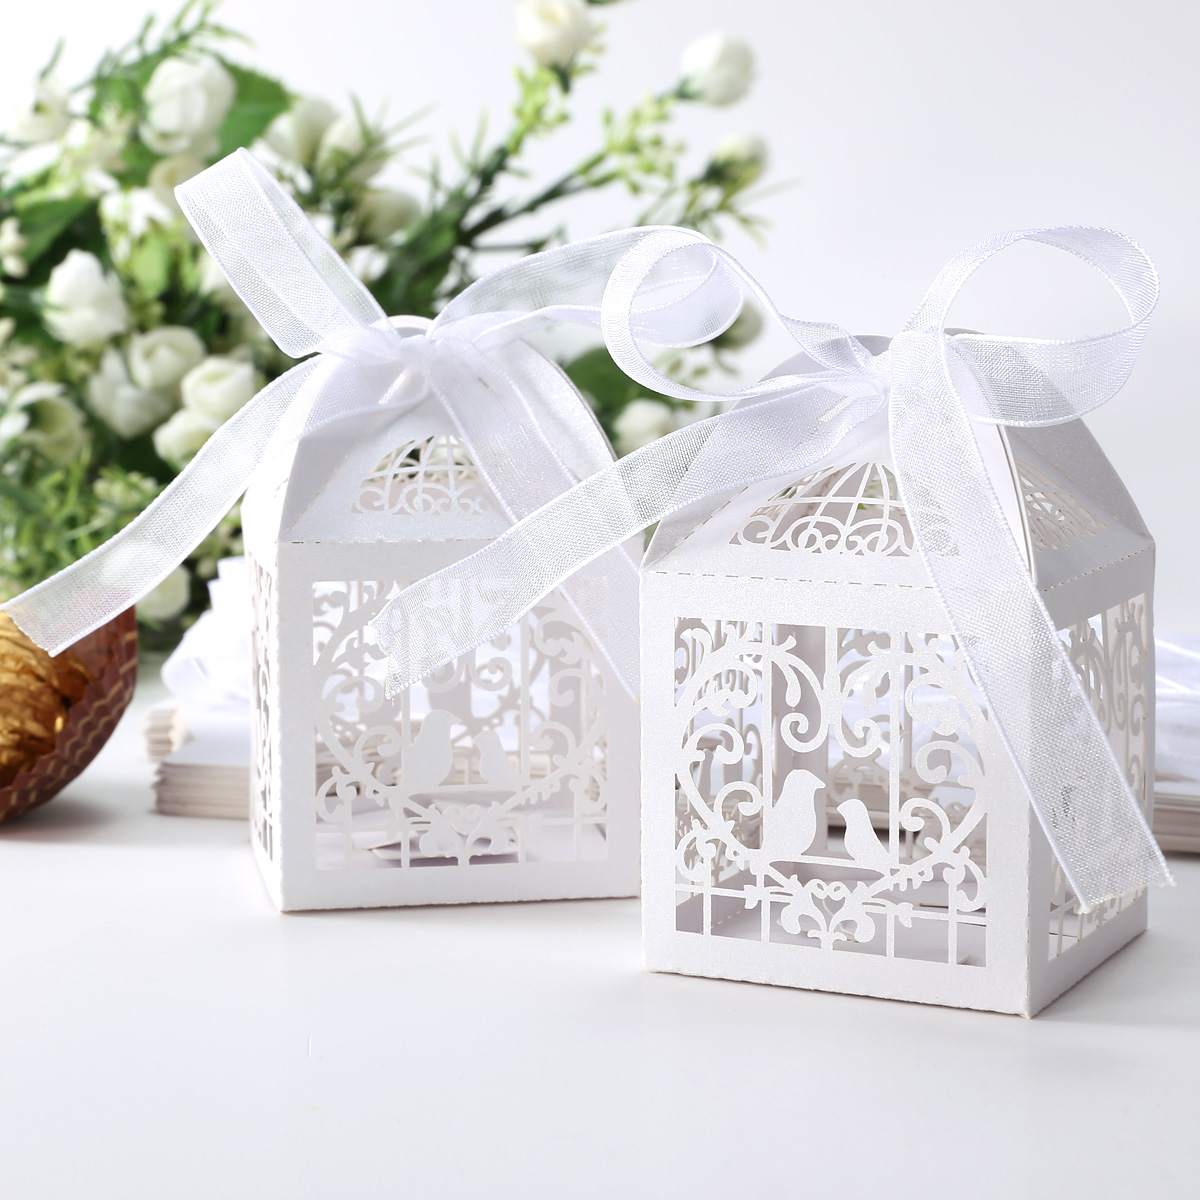 Gift Boxes For Weddings: 25PCS Wedding Laser Cut Favor Boxes Hollow Cut Love Birds